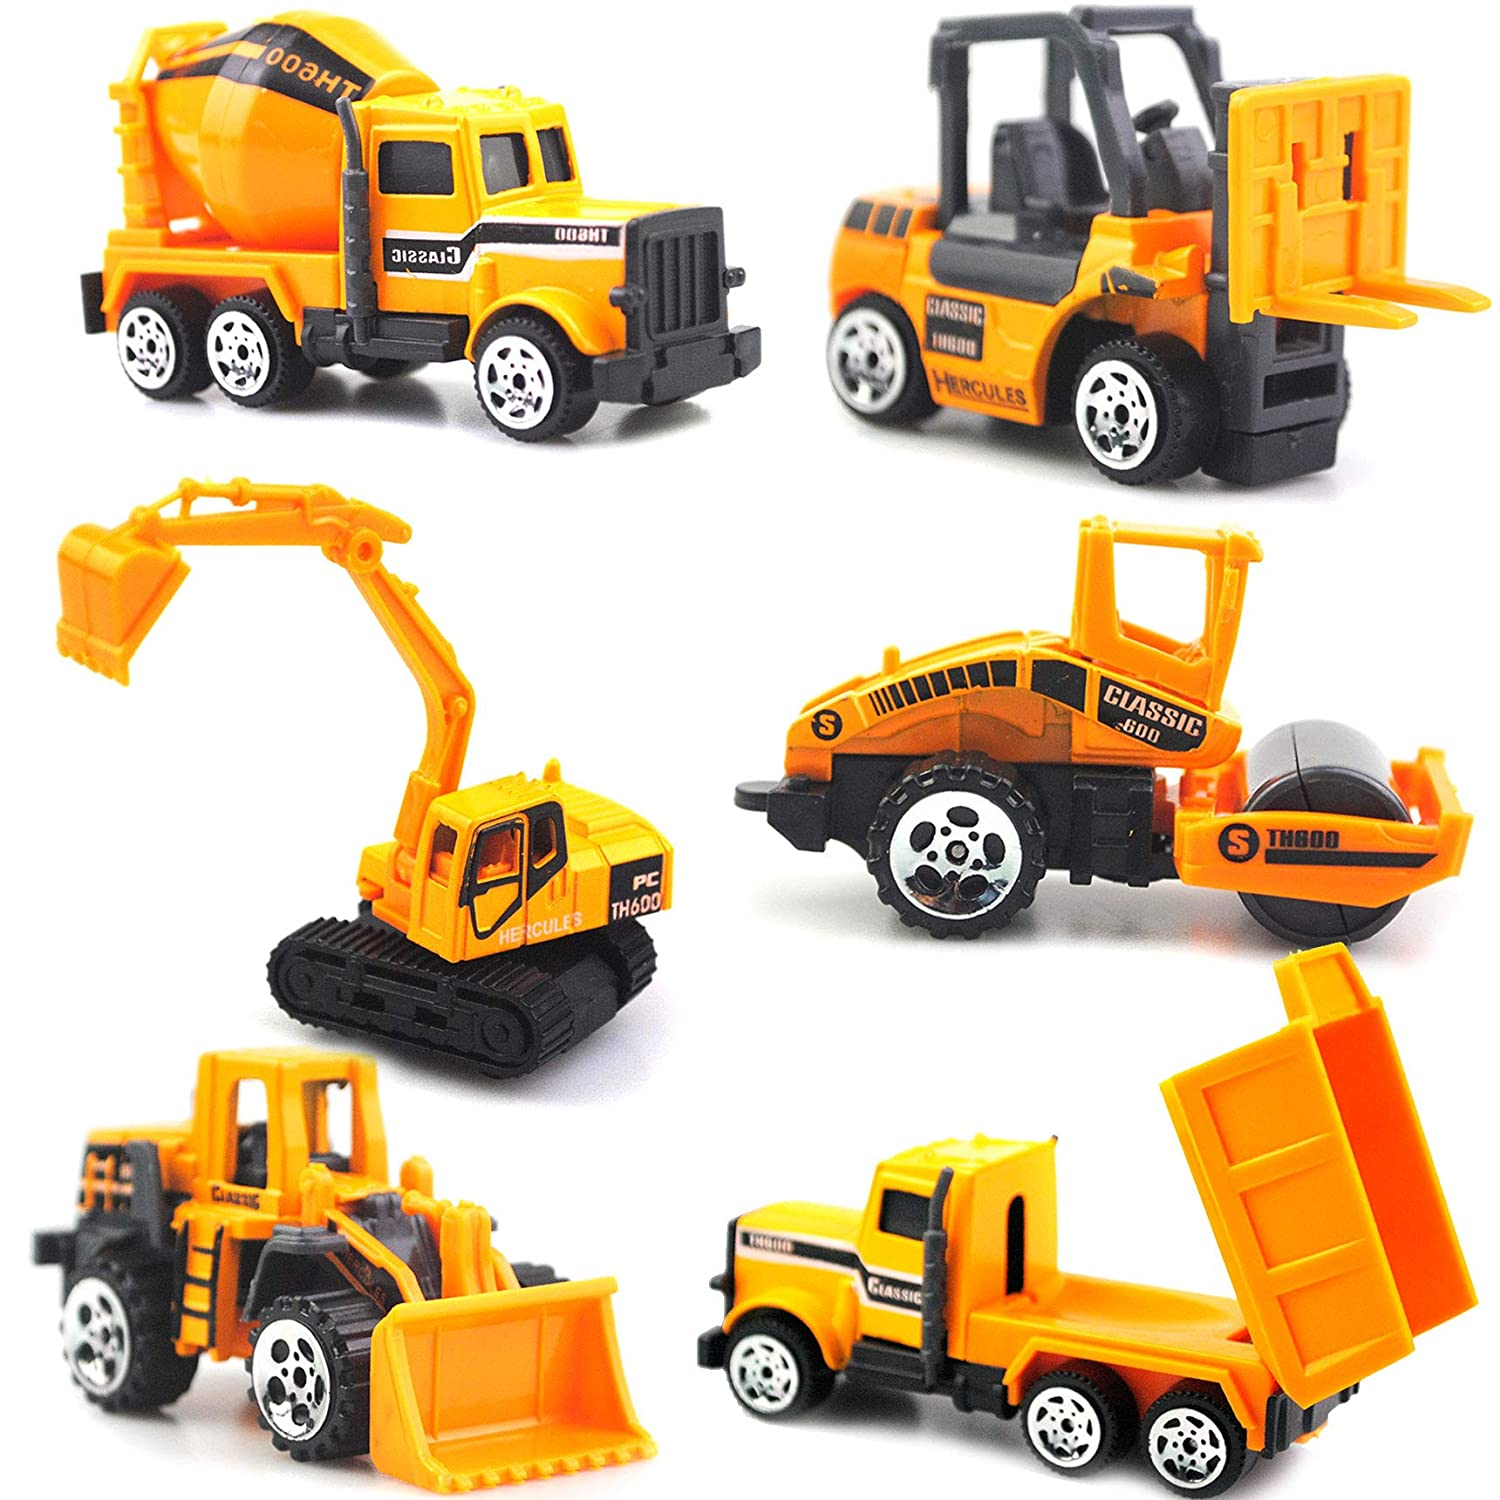 Construciton Engineering Vehicle Models,Pack of 6 Present Gift Children Zontlink Limited Zontlink Toy Vehicles Cars Trucks